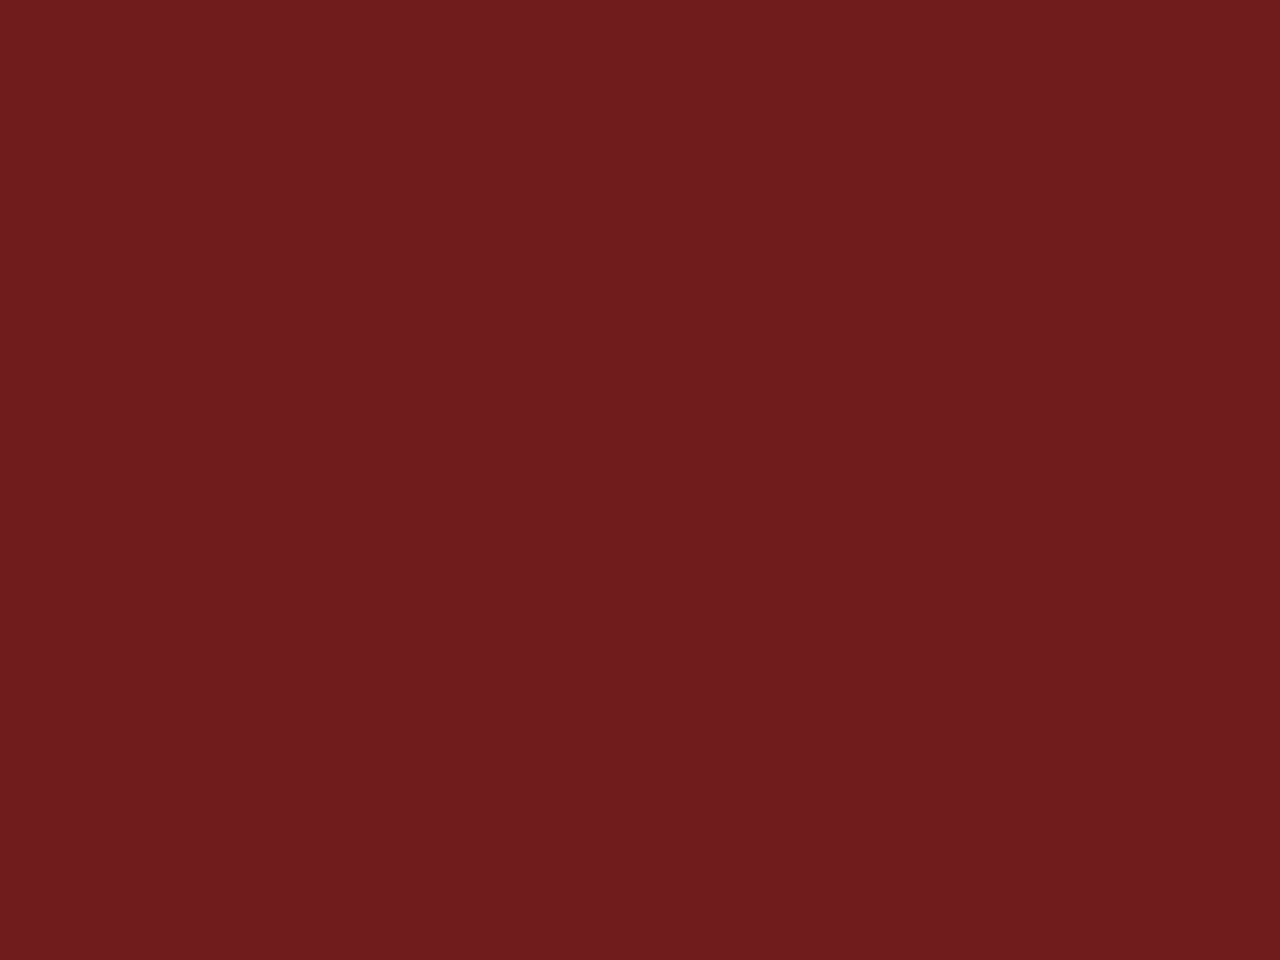 1280x960 Prune Solid Color Background